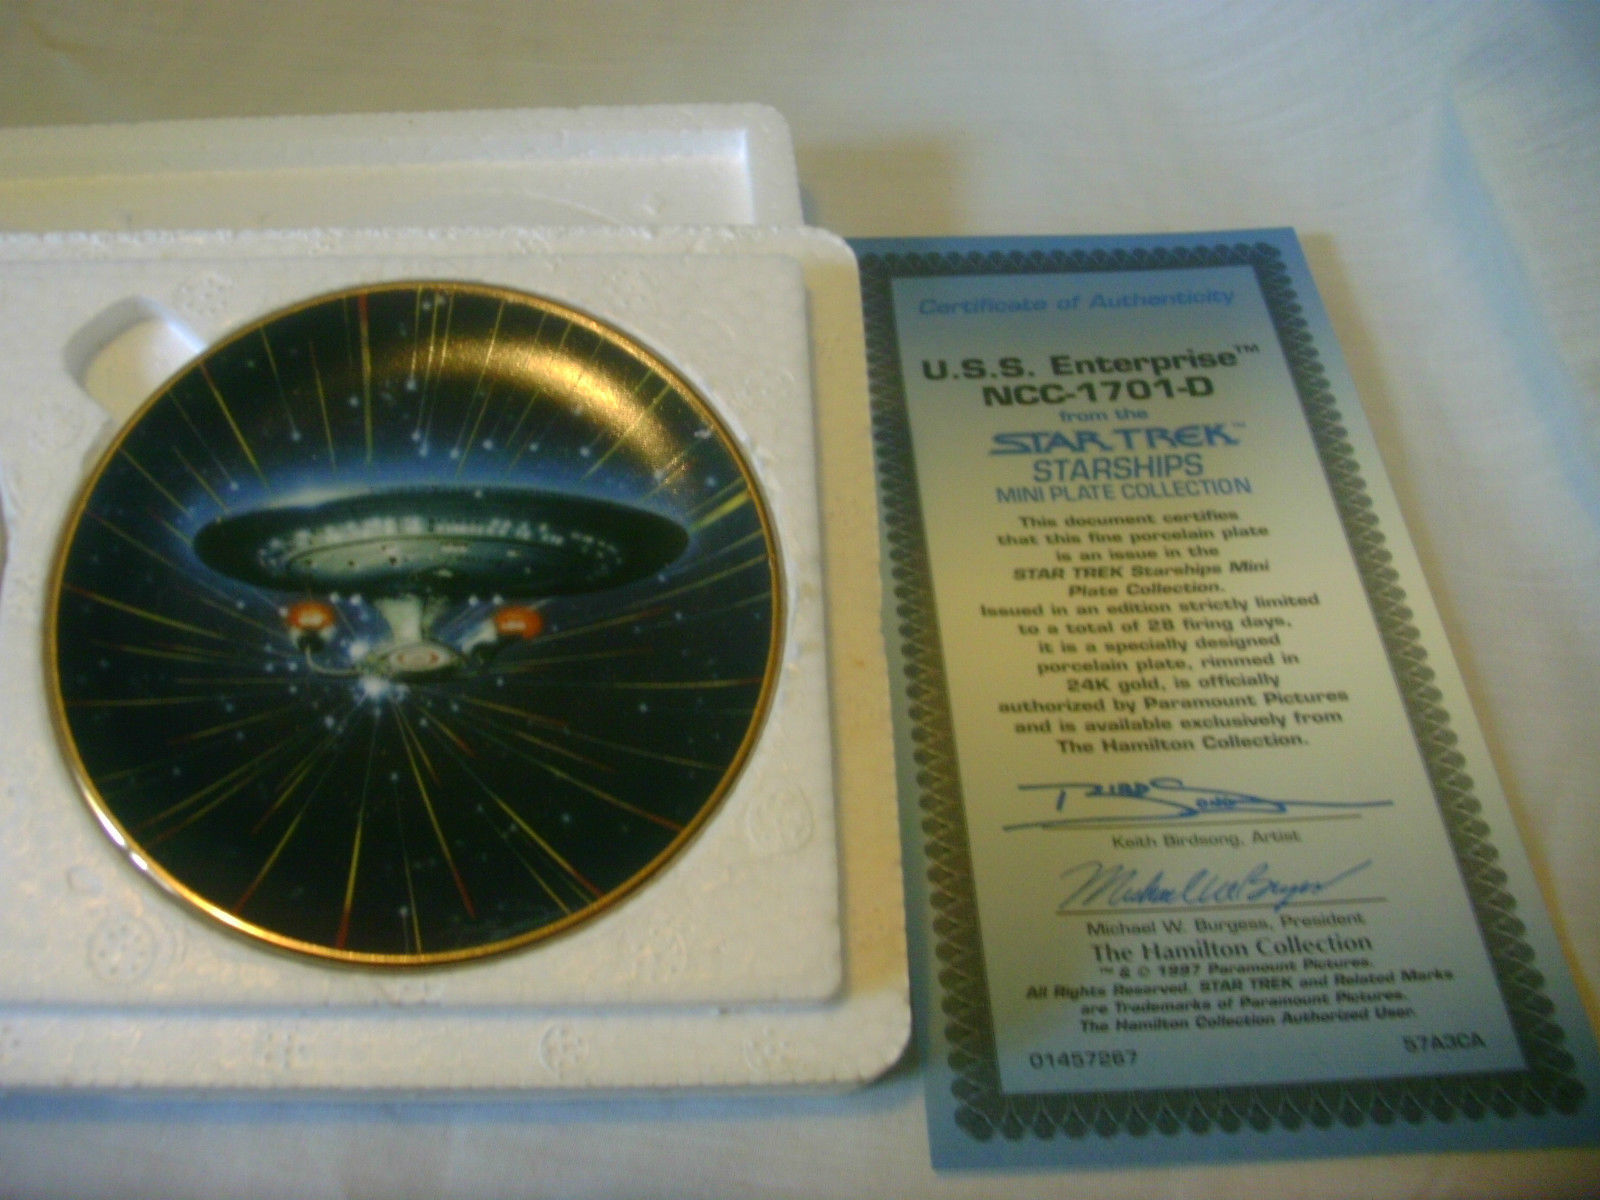 Star Trek Starships Mini Plates Set of 2 The Hamilton Collection image 2